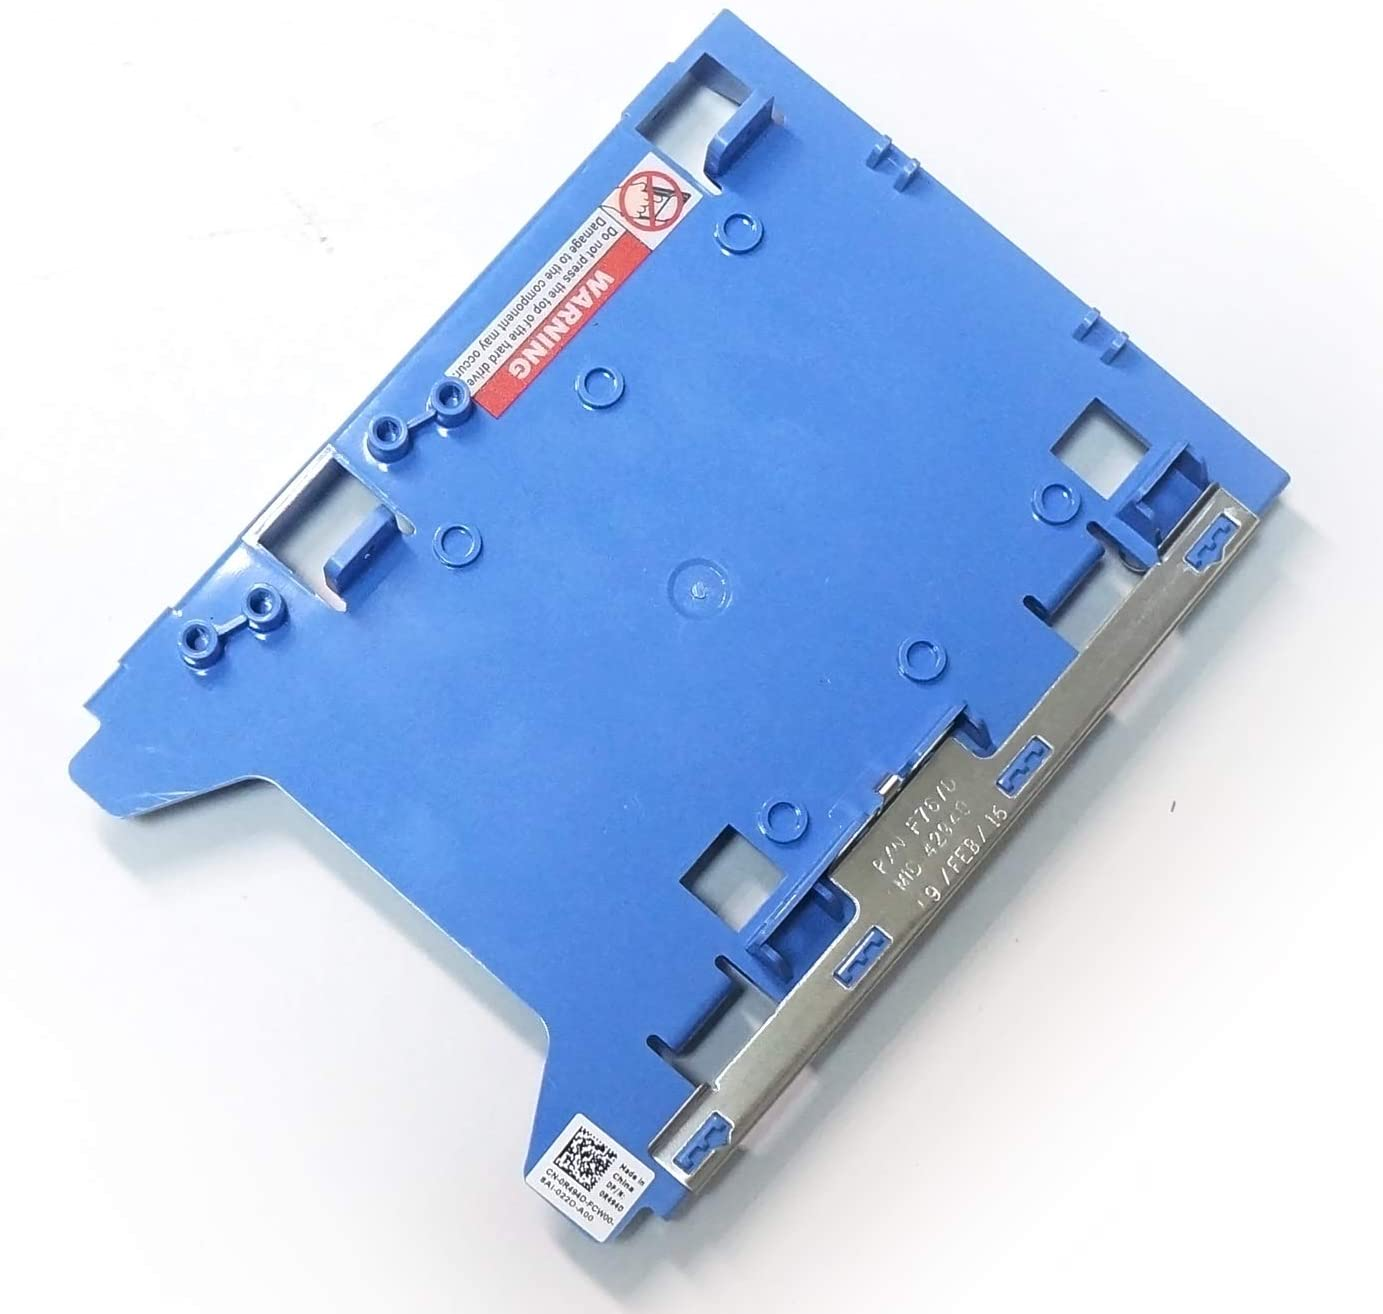 "POINWER R494D 0R494D F767D J132D Replacement for DELL OptiPlex 2.5"" HDD SSD Caddy Tray Adapter"